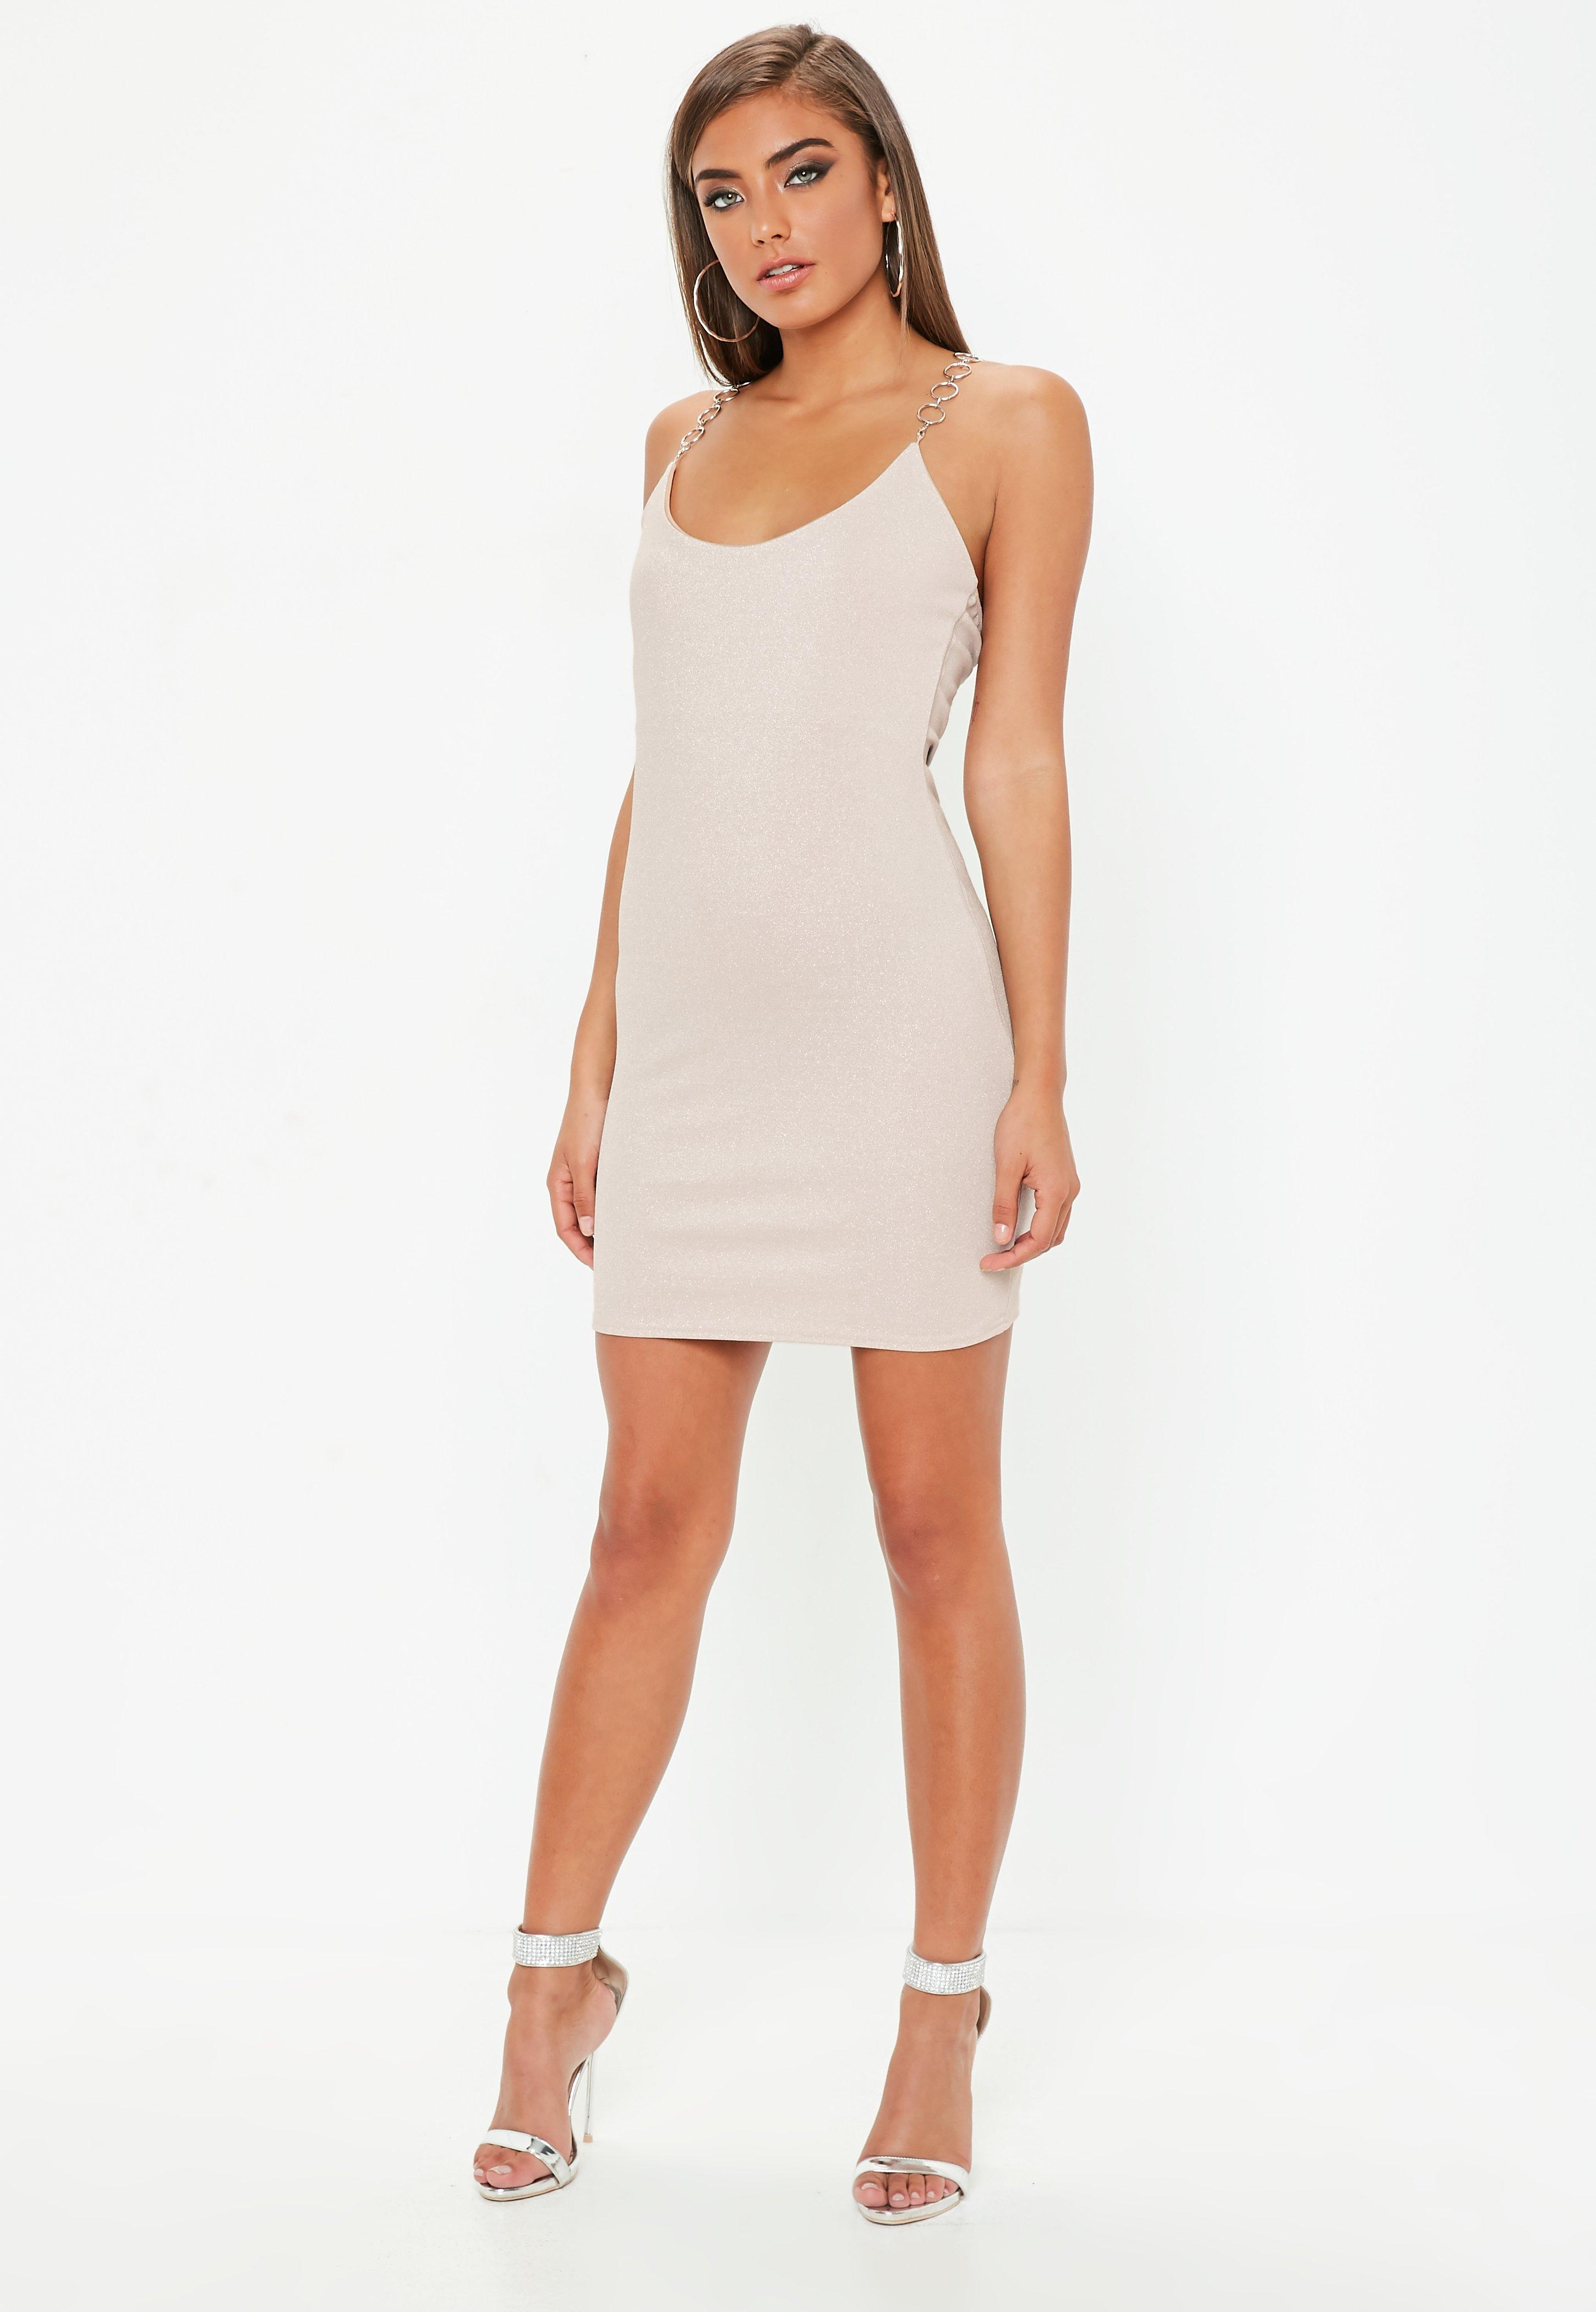 Missguided Chain T Bar Metallic Strappy Dress Sale Popular Excellent Cheap Pick A Best Cheap Online Shop Cheap With Credit Card WnT20